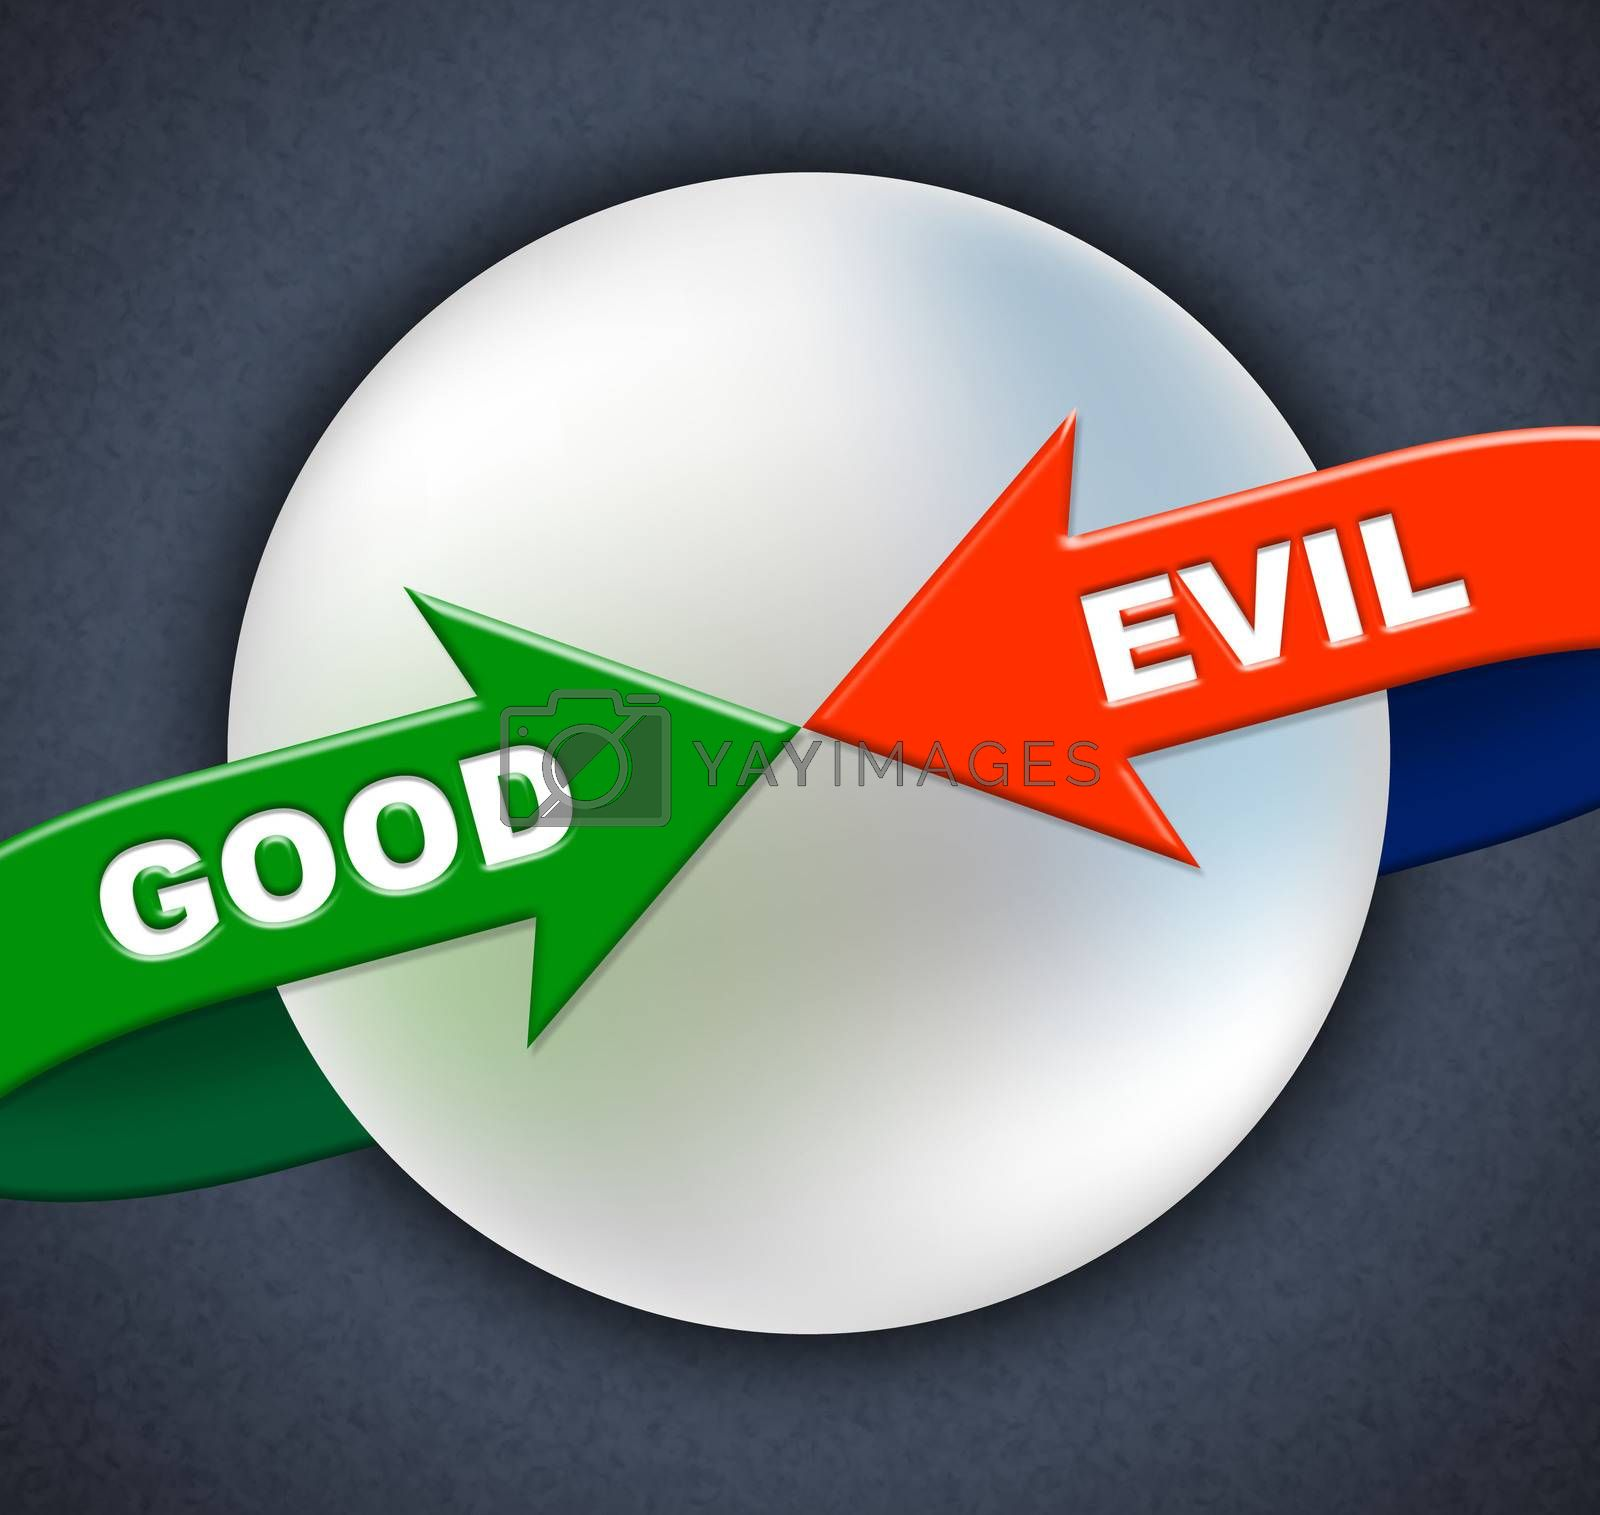 Good Evil Arrows Indicates All Right And Awesome by stuartmiles